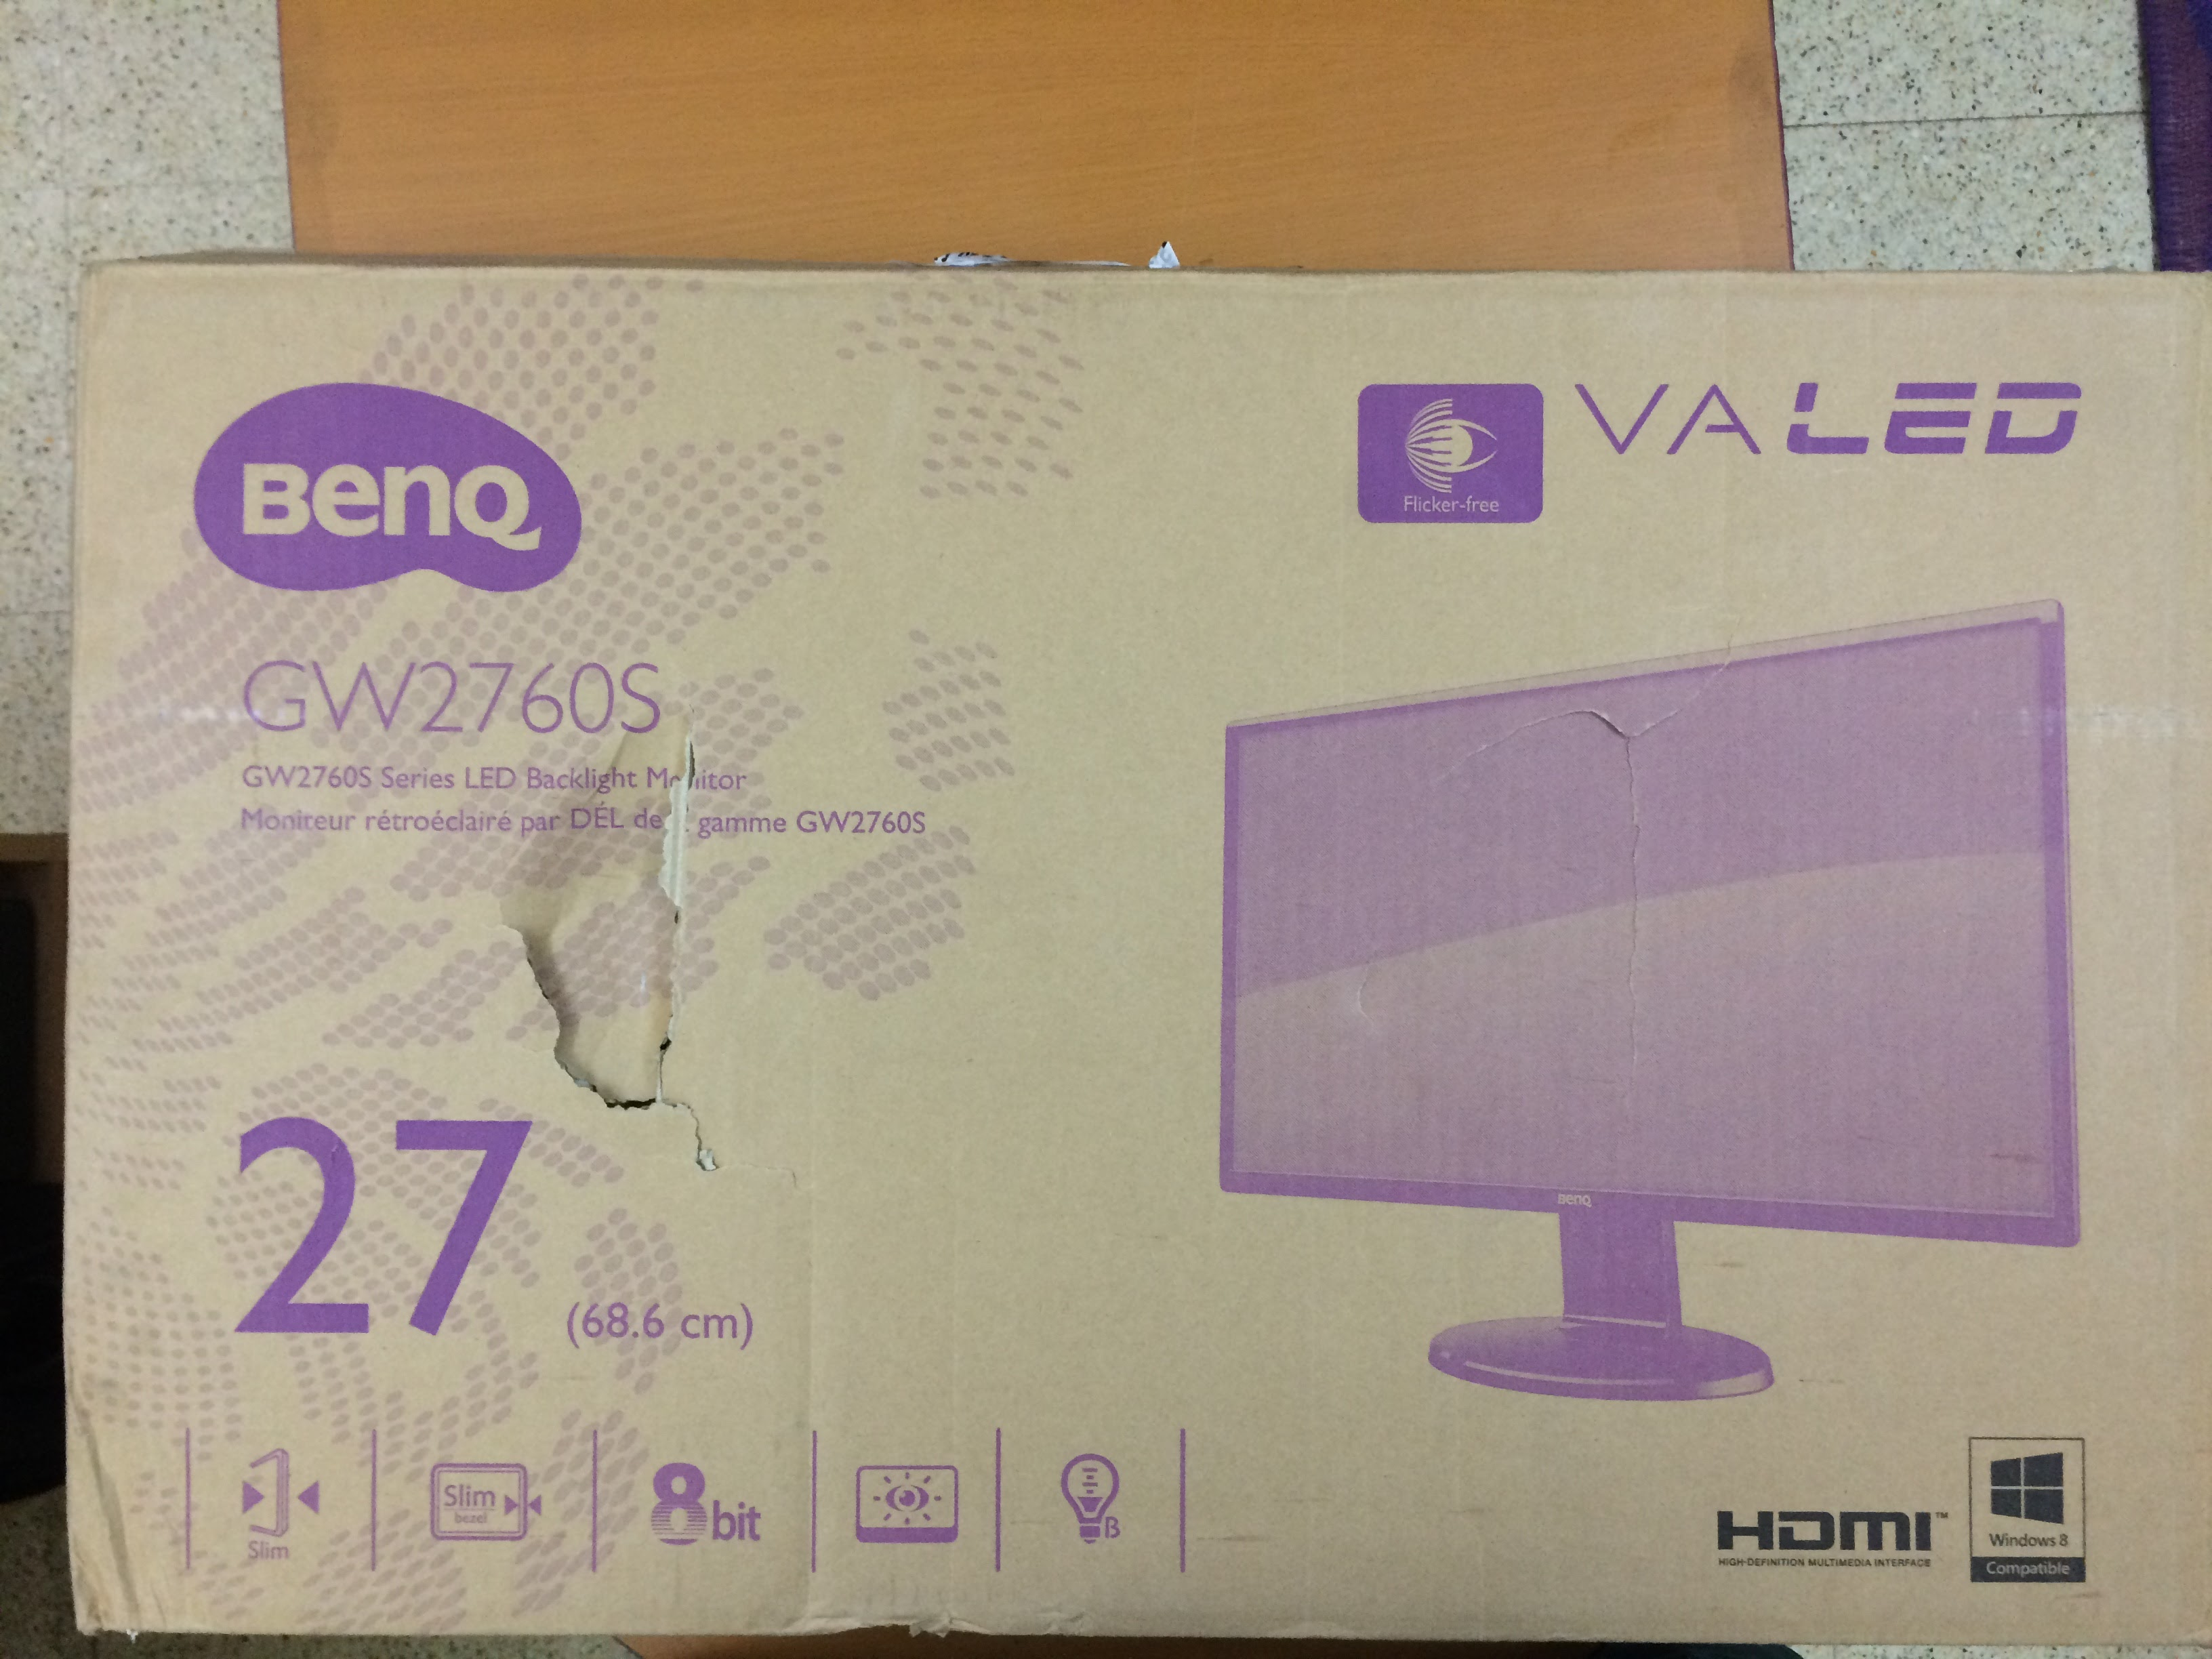 snapdeal-gw-2760hs-benq-monitor-package